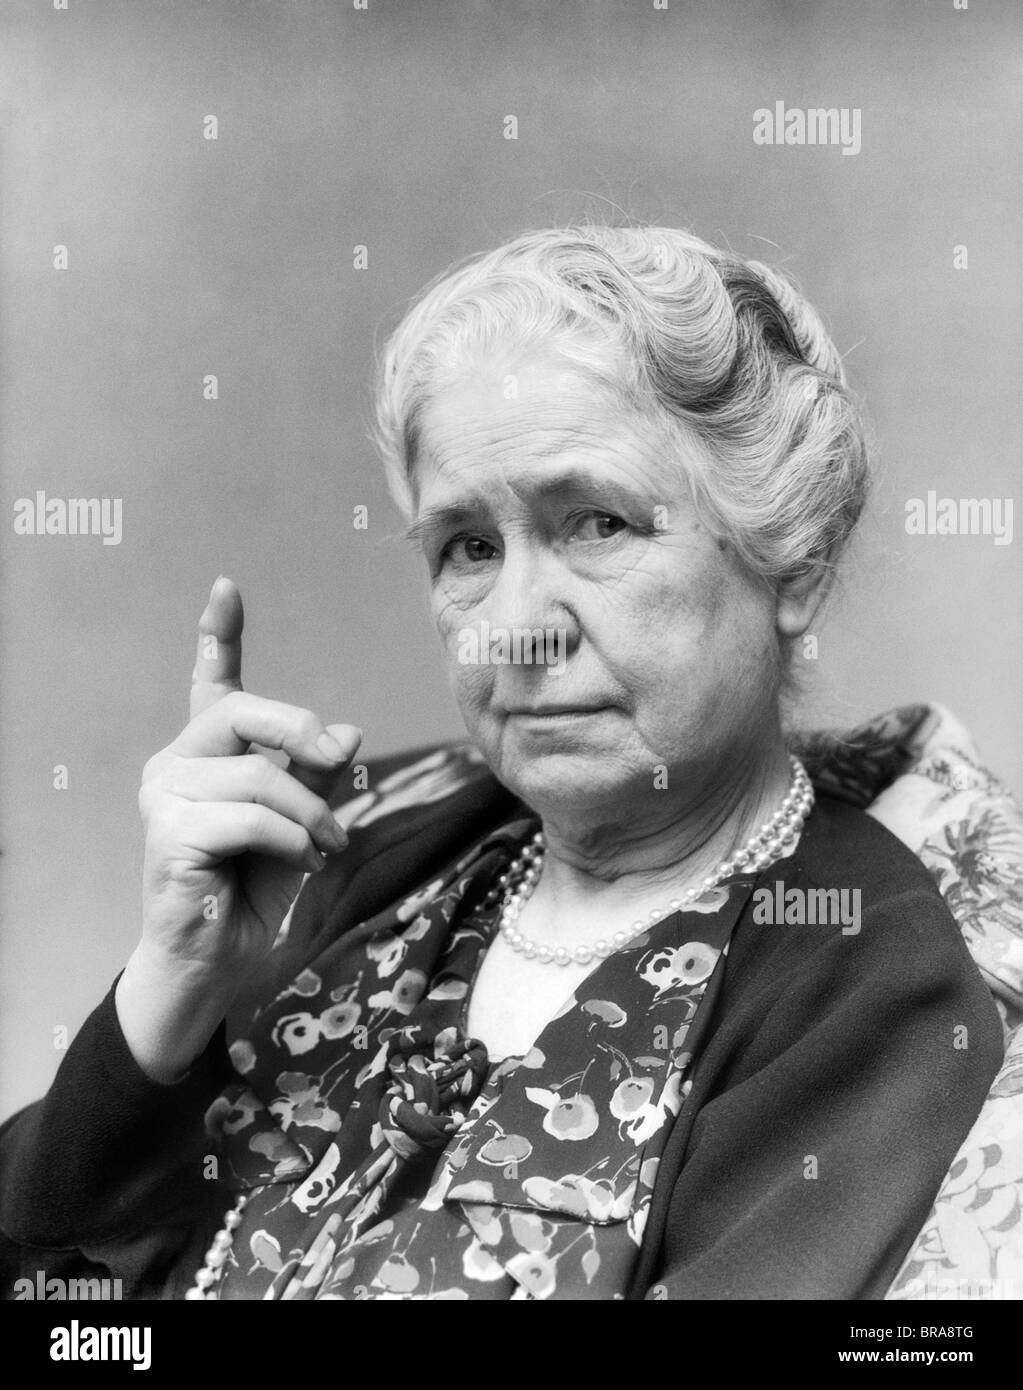 1930s PORTRAIT OF ELDERLY WOMAN WITH FINGER RAISED AT VIEWER - Stock Image